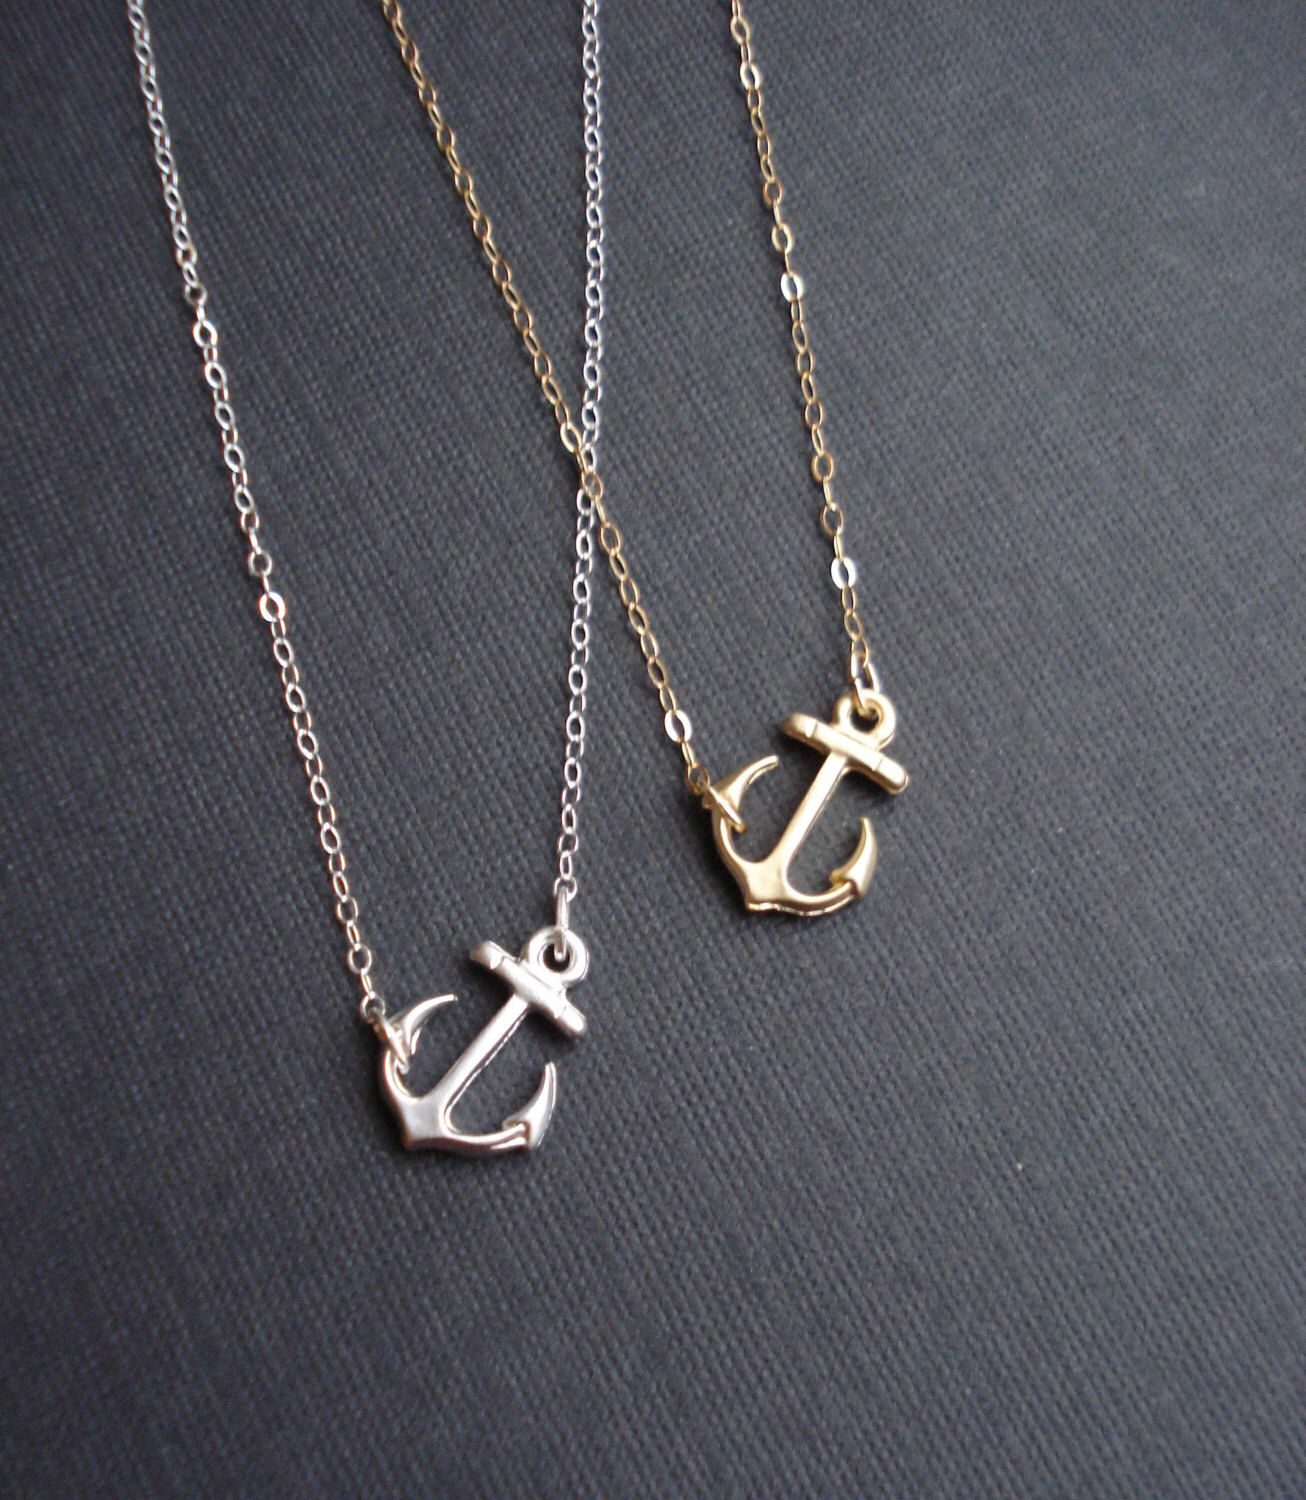 Sideways anchor necklace silver or gold anchor necklace in sterling sideways anchor necklace silver or gold anchor necklace in sterling silver anchor pendant necklace modern aloadofball Images